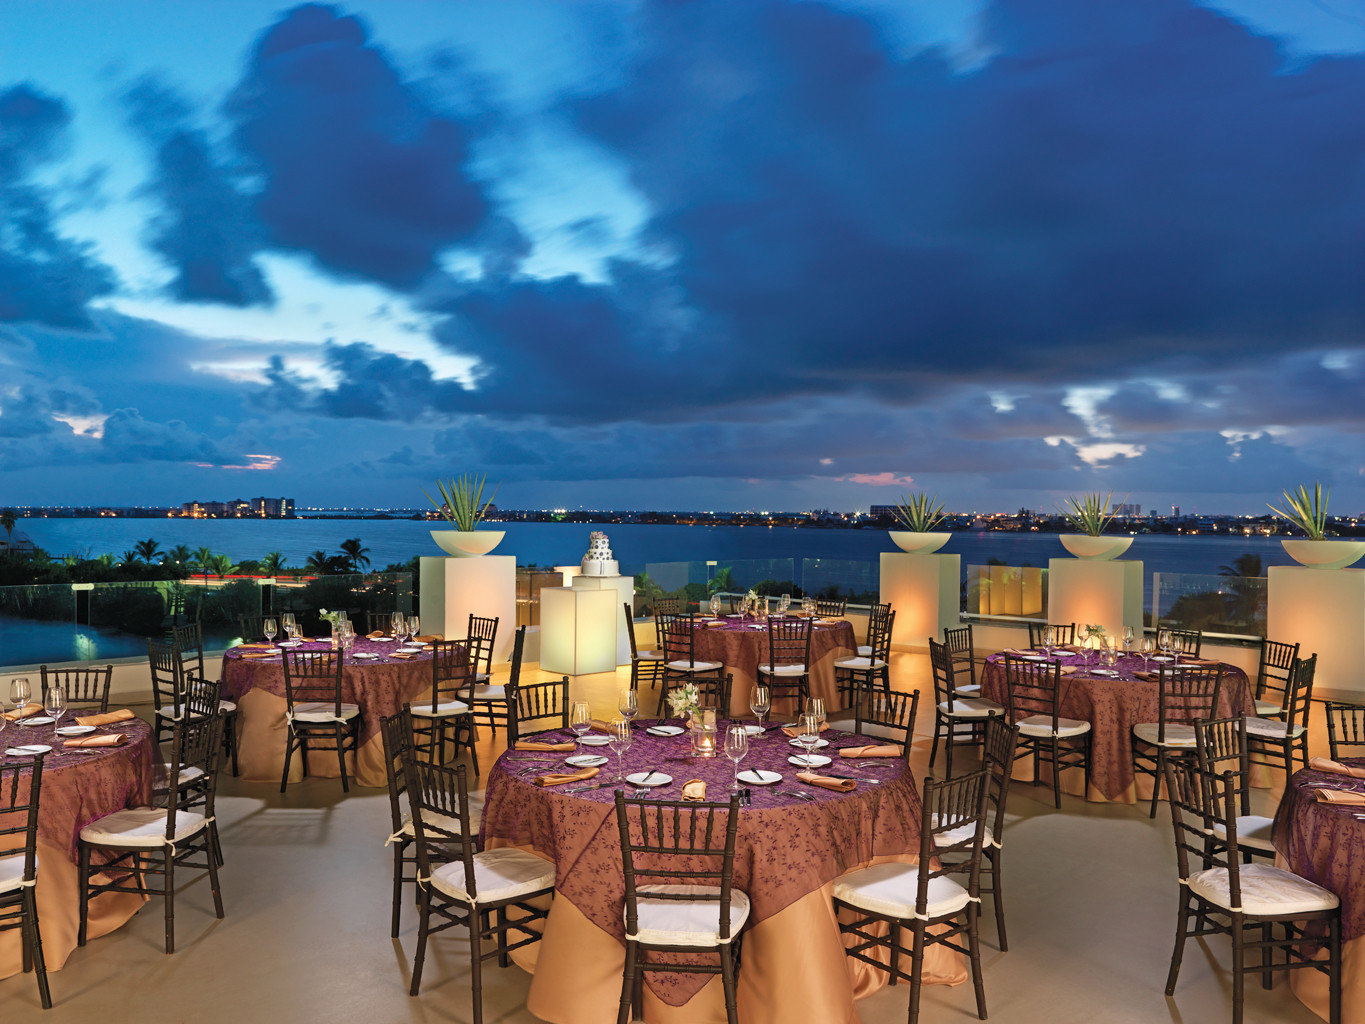 All-Inclusive Resorts Hotels Romance sky floor chair scene evening estate Resort restaurant